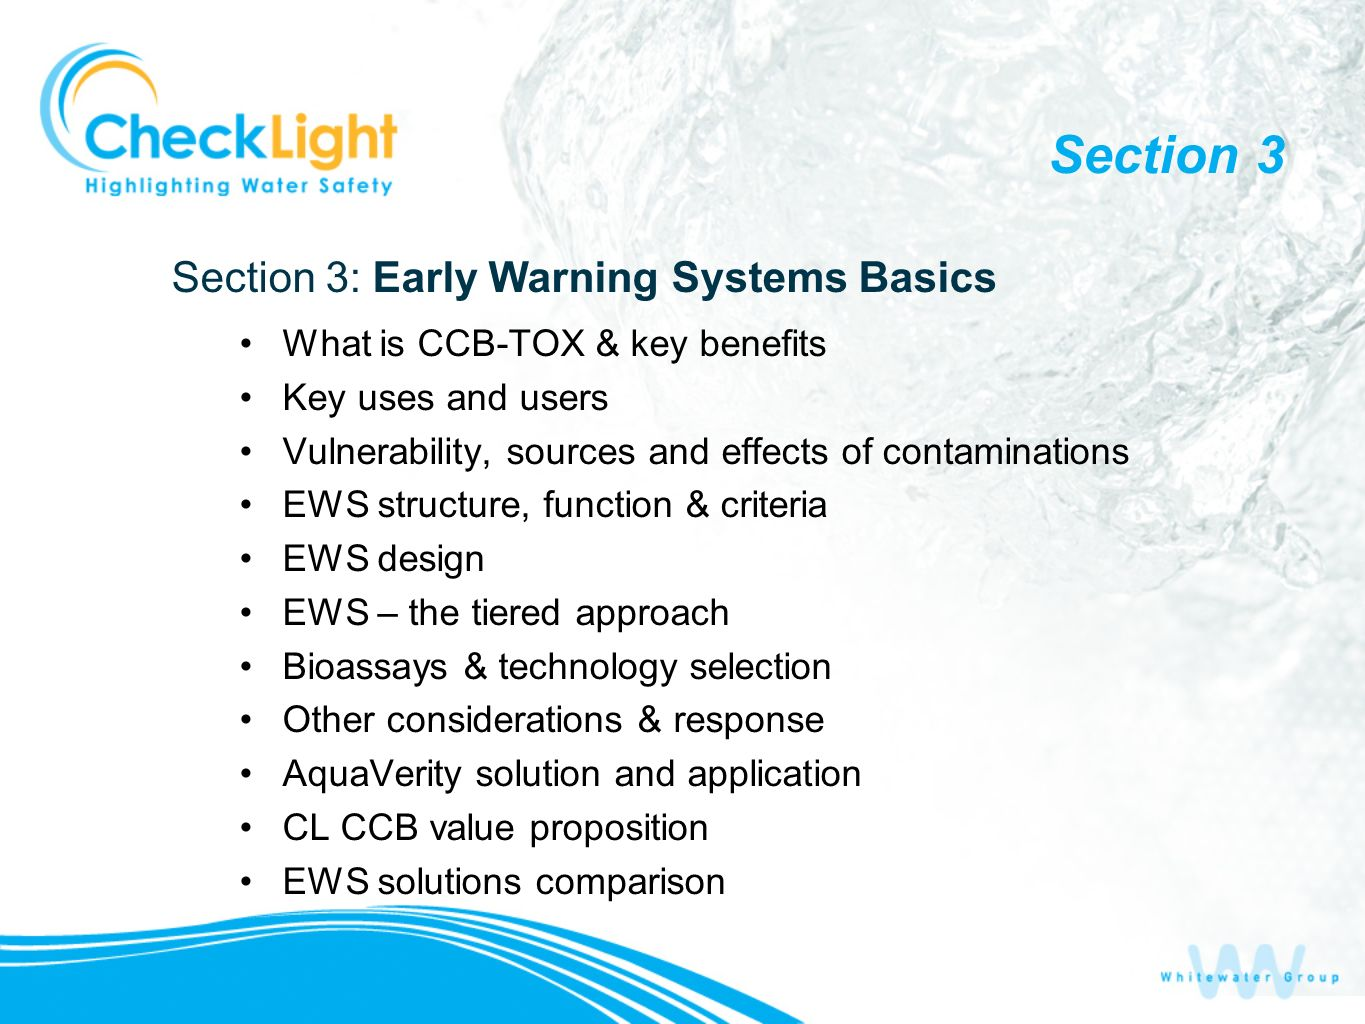 Section 3 Section 3: Early Warning Systems Basics